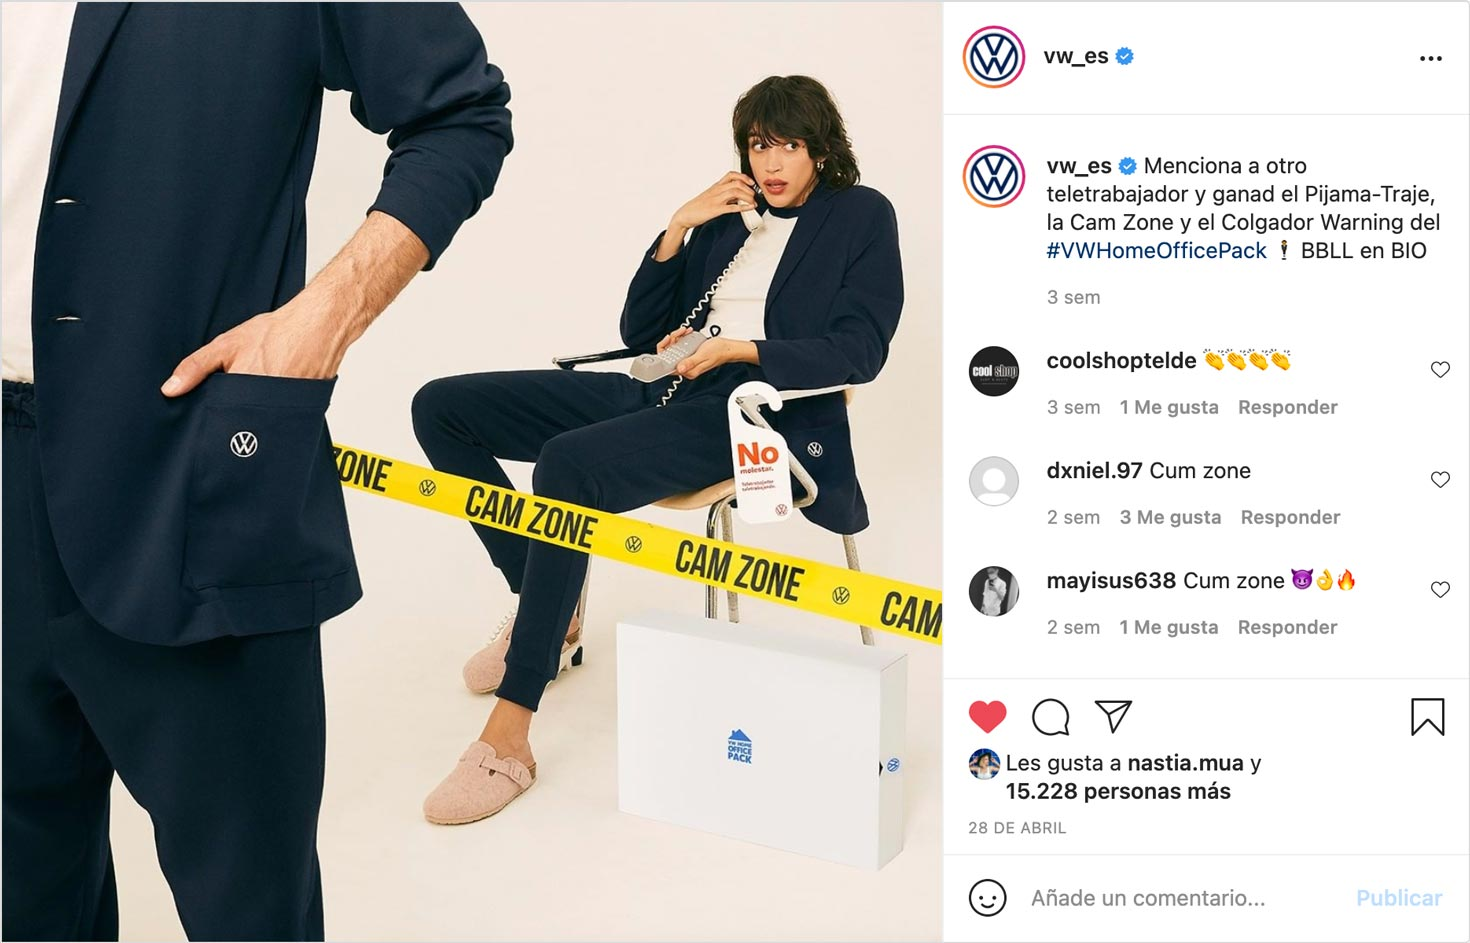 Volkswagen contacted us as consultancy and producers on how to show their brand new product: The Pijama Suit. A comfy suit for working at home while having tons of video calls. It was acompanied by other elements called the Home Office Pack.